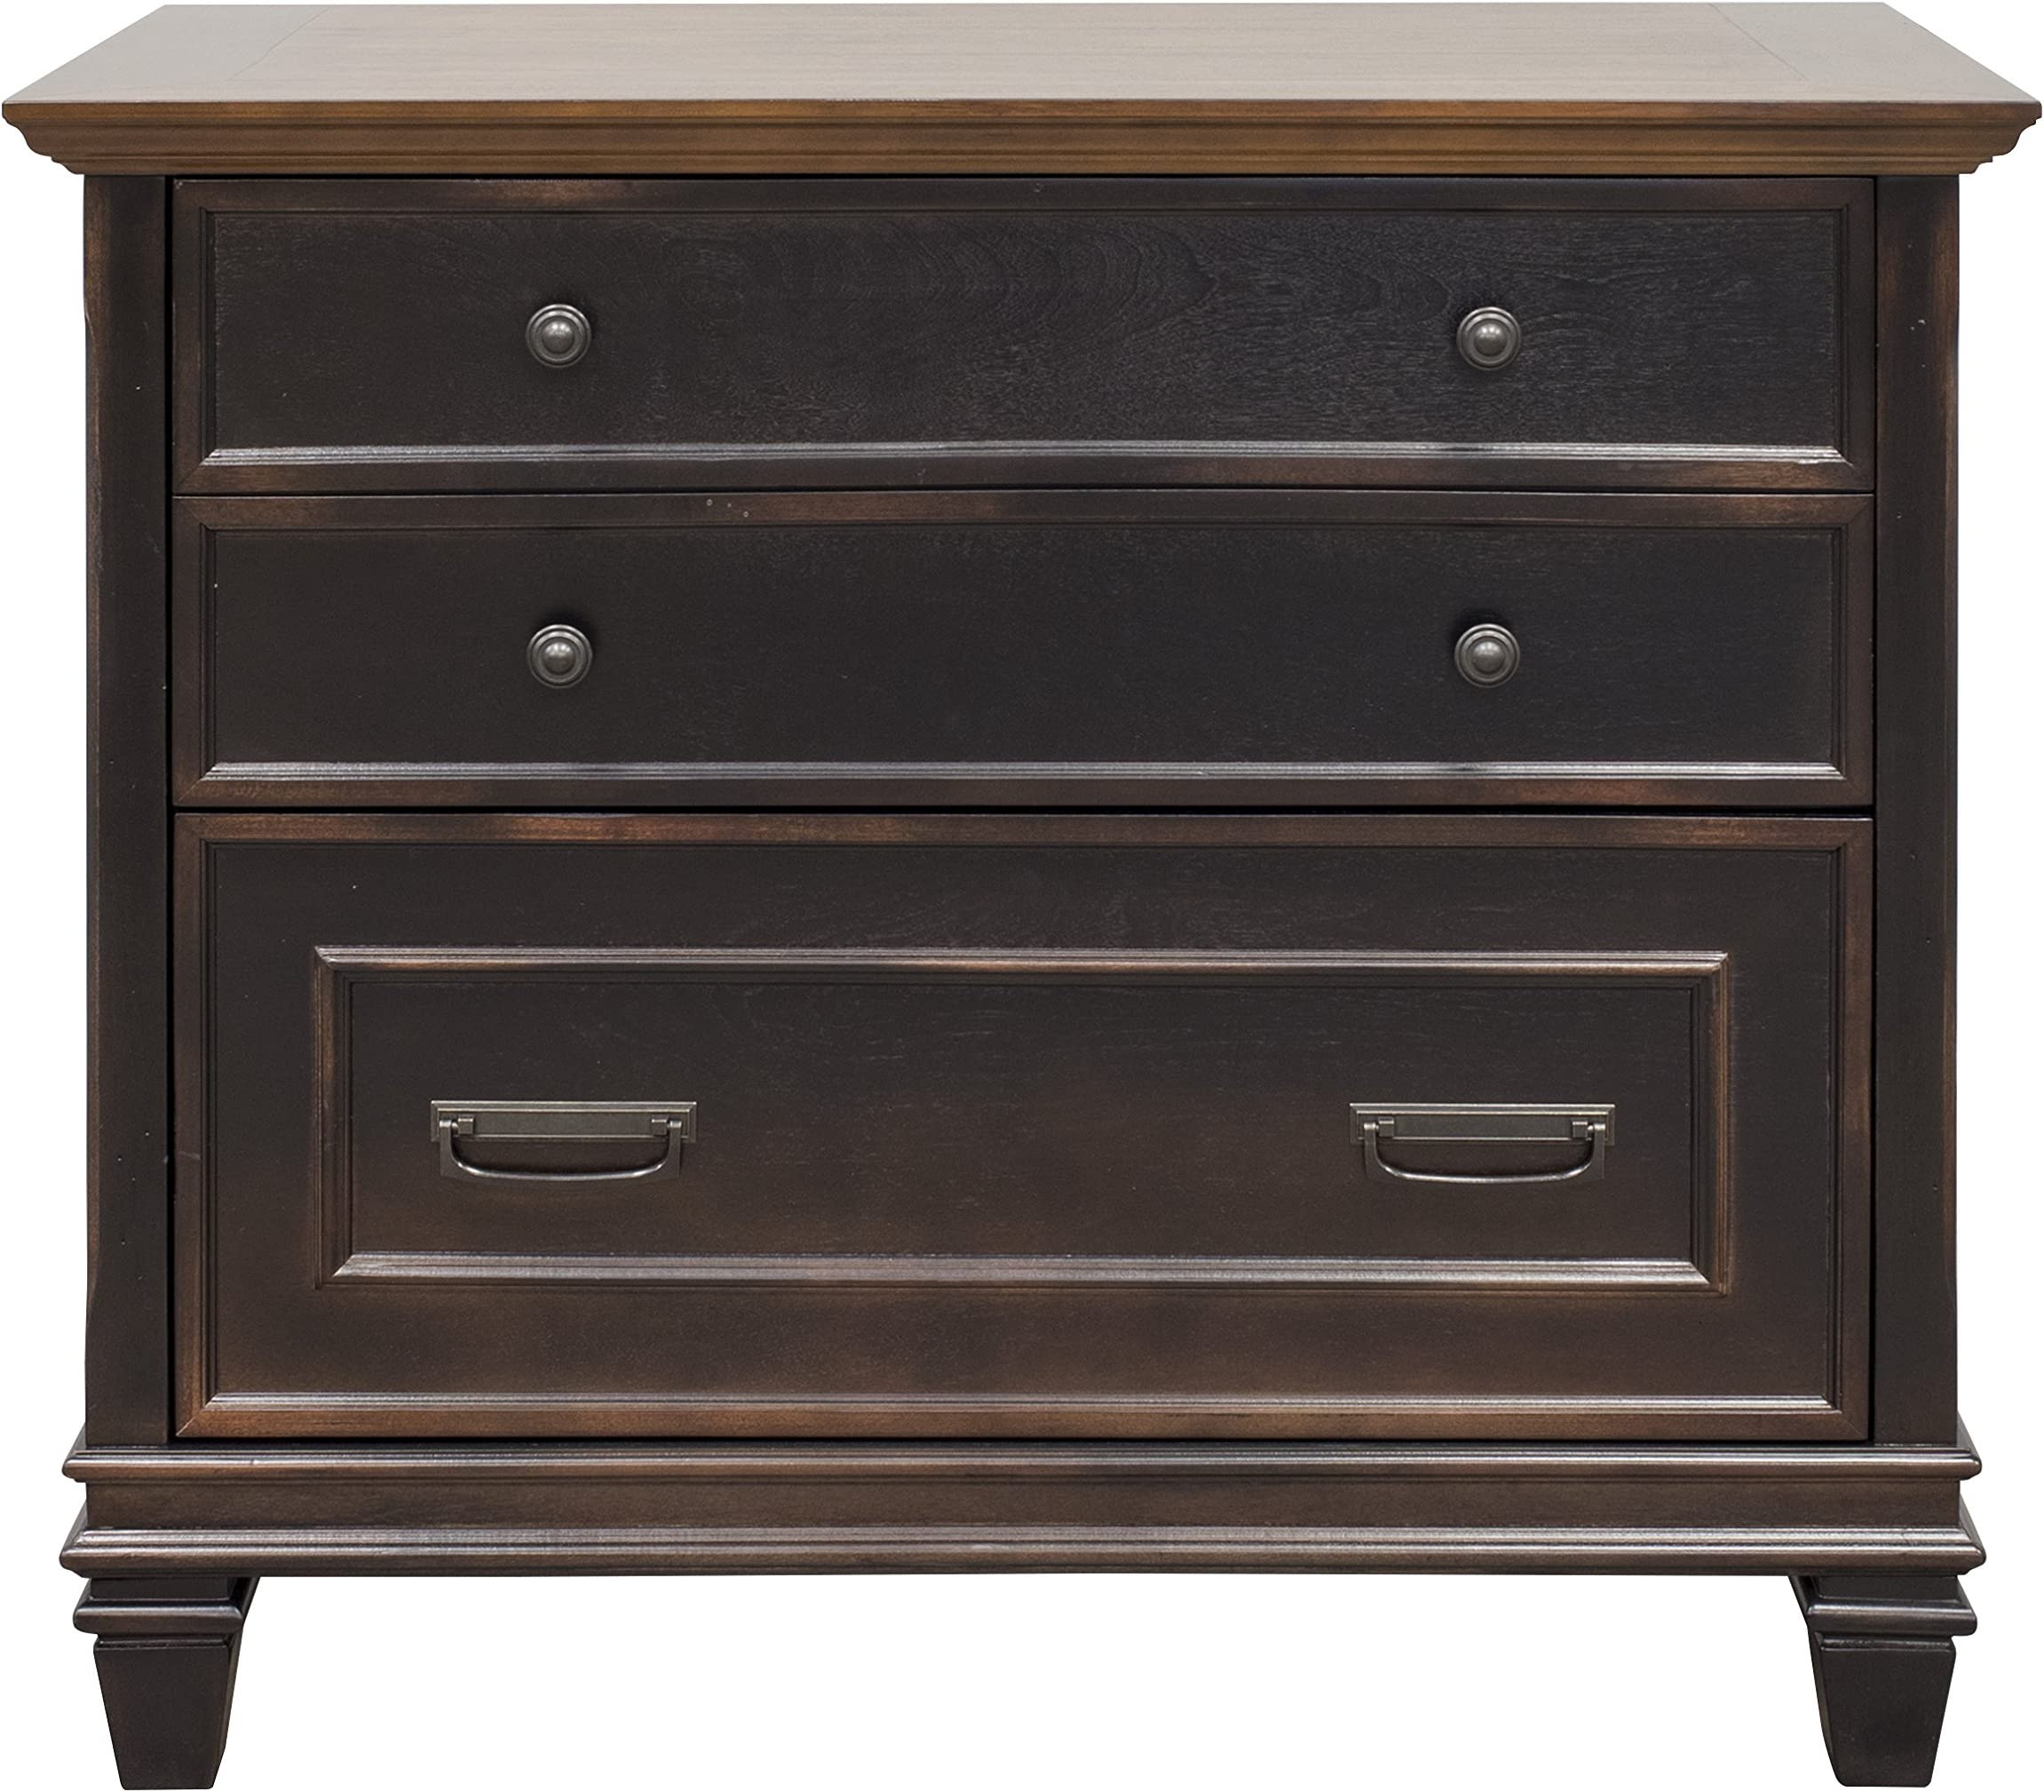 Martin Furniture ...  sc 1 st  Amazon.com & Office File Cabinets | Shop Amazon.com